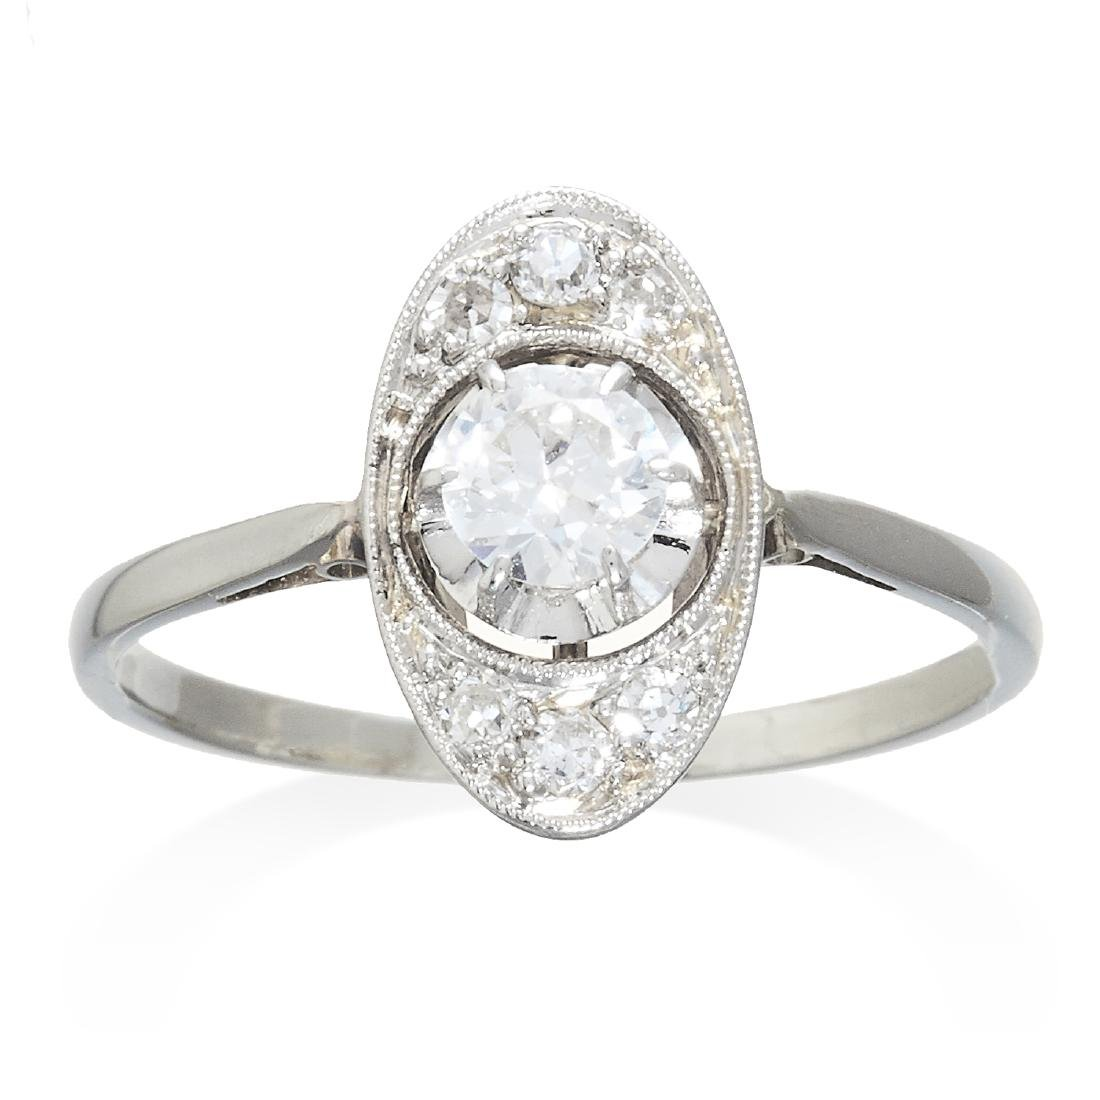 A DIAMOND DRESS RING in white gold or platinum, the